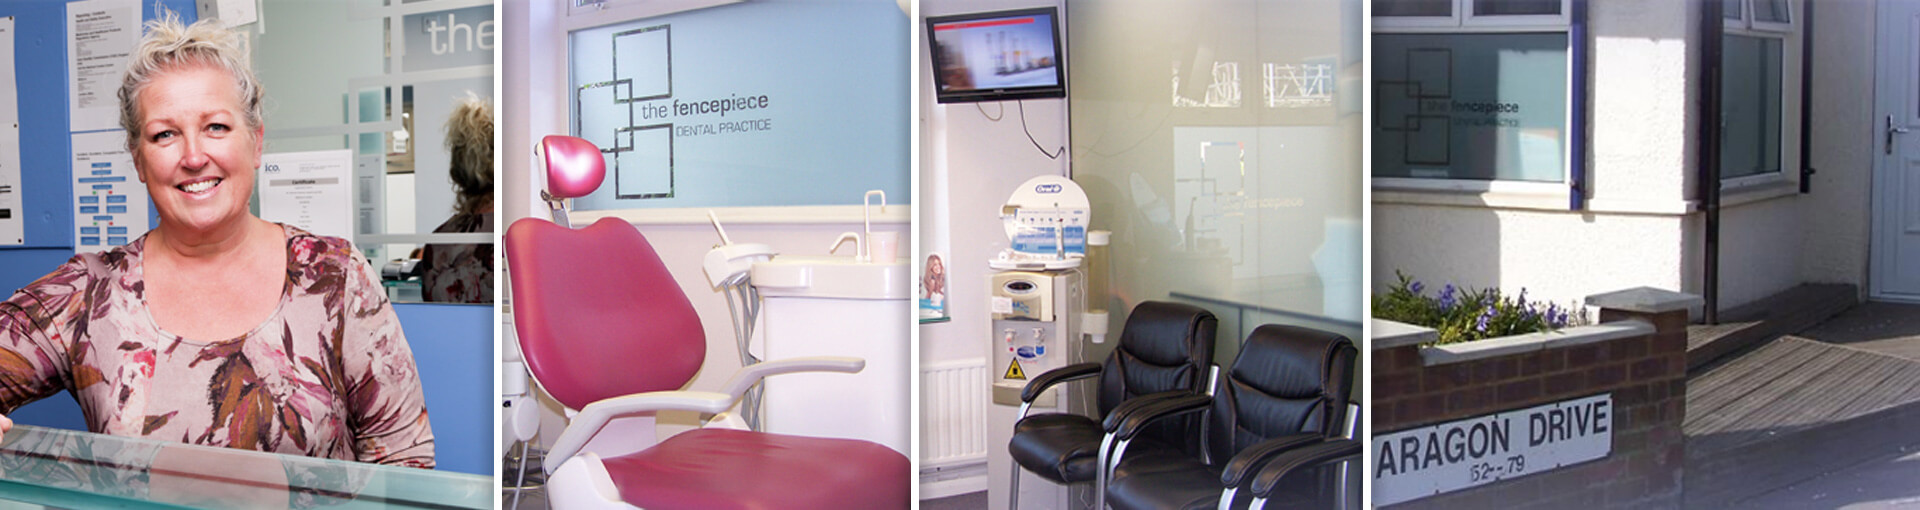 The Fencepiece Dental Practice